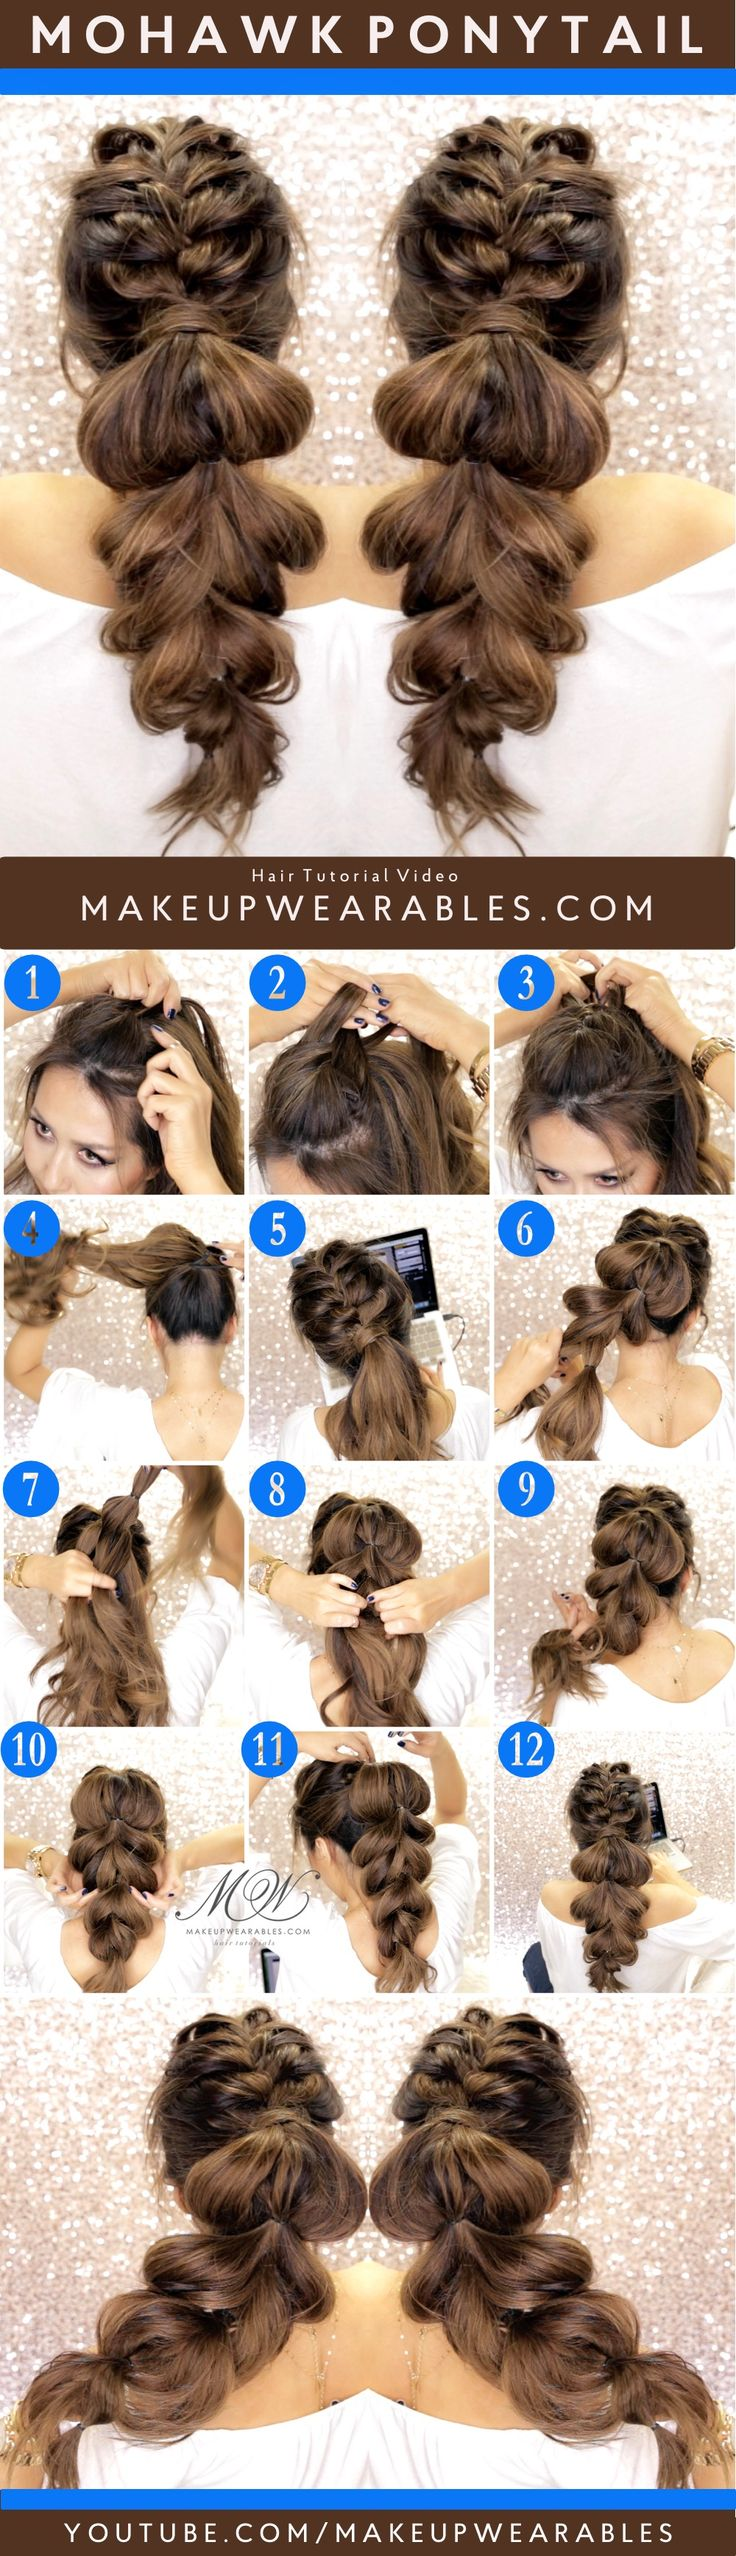 Cute Braided Ponytai for spinrg!  #Hairstyles  #hair #beauty